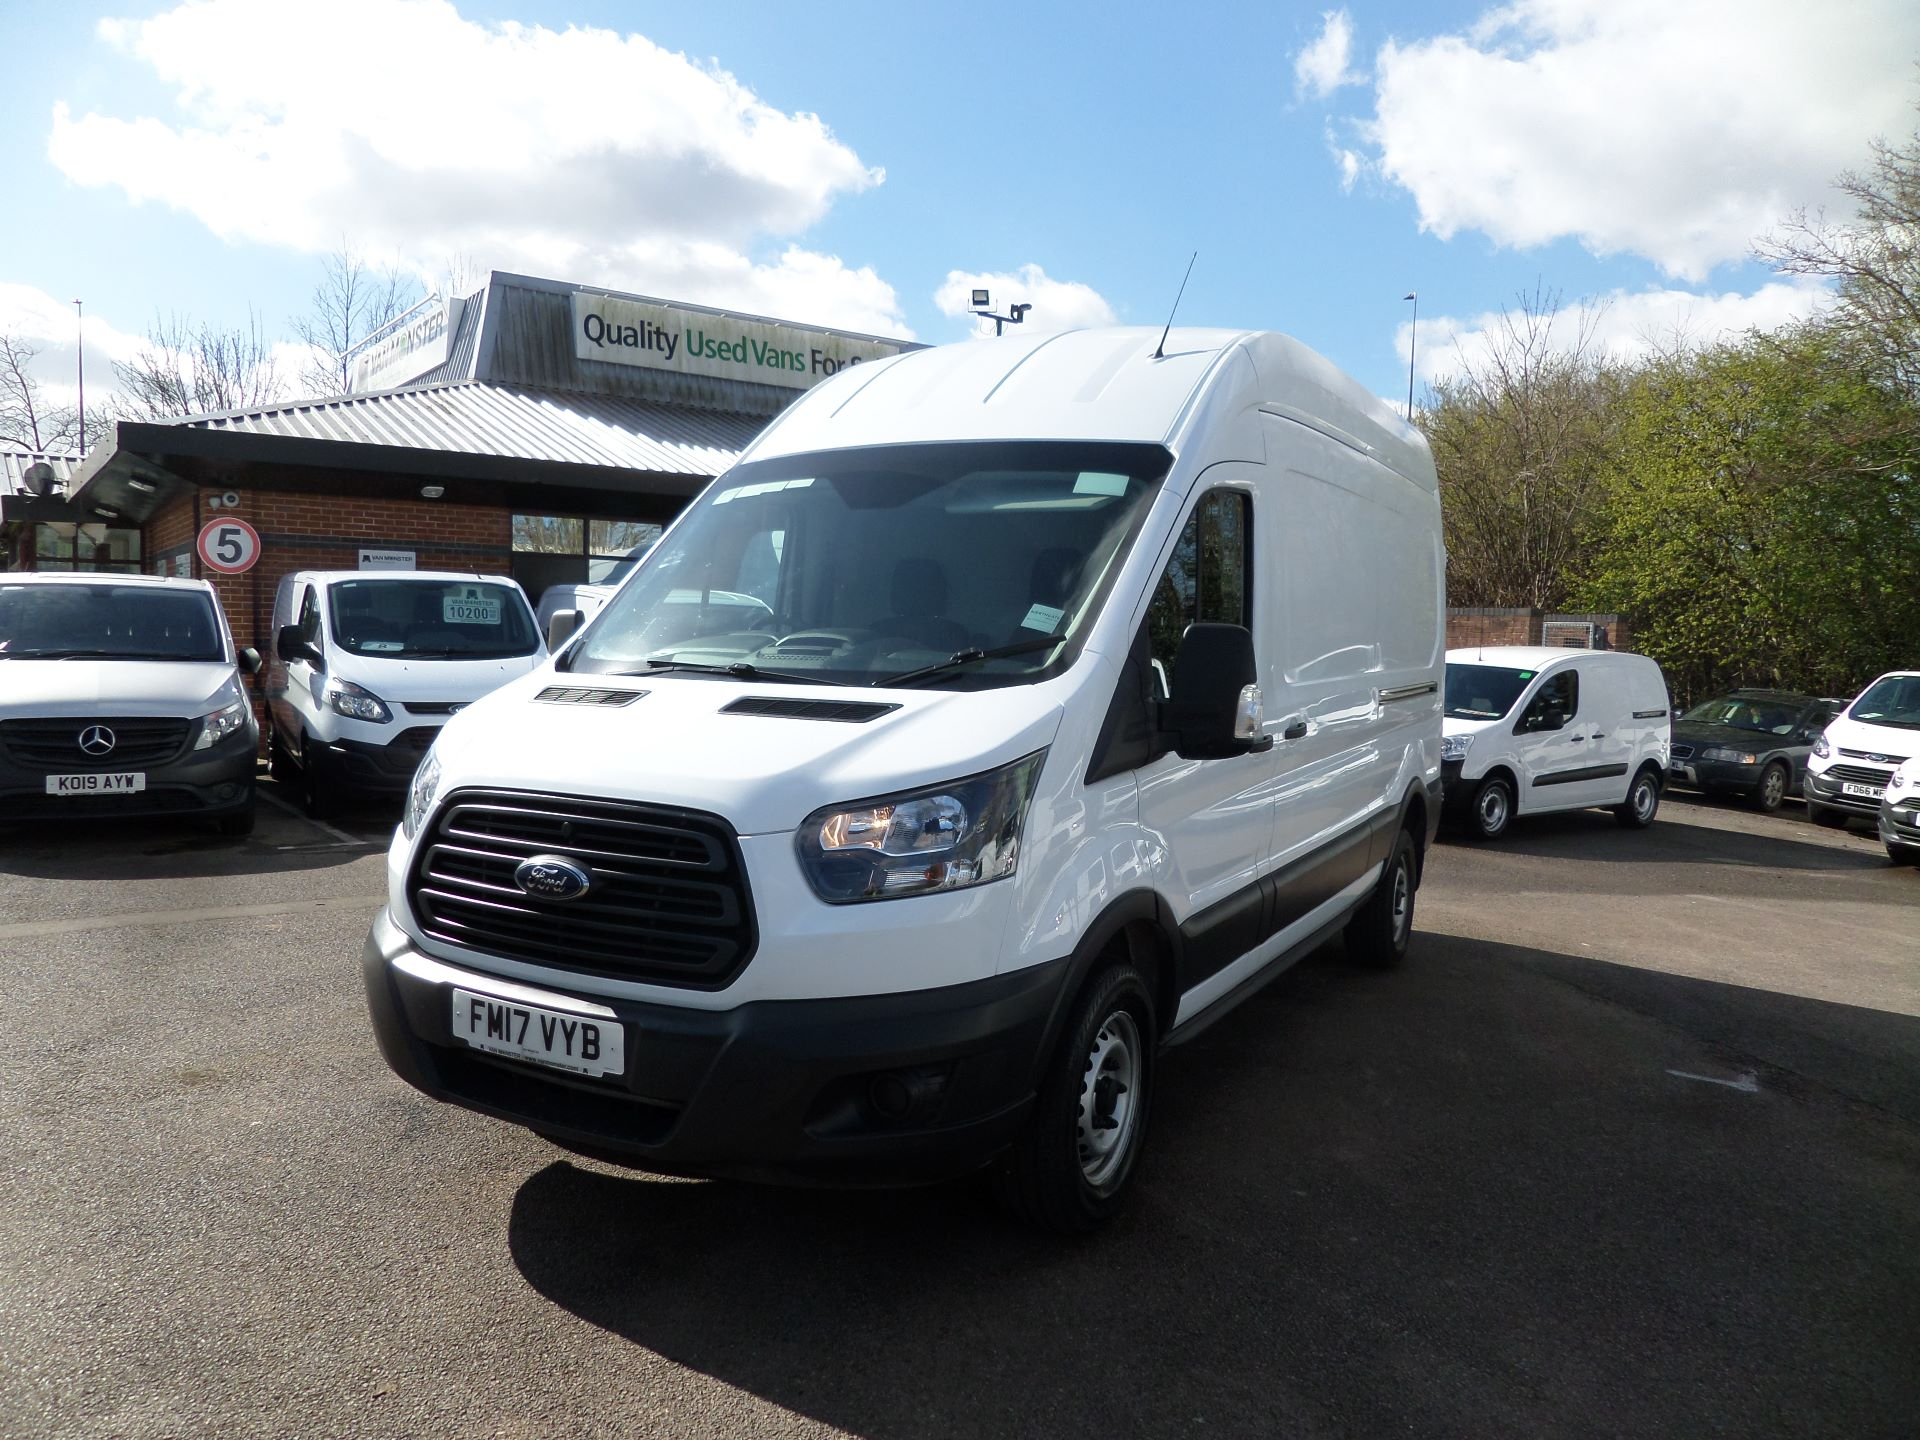 2017 Ford Transit 2.0 Tdci 130Ps H3 Van Euro 6 ( Limited To 70MPH ) (FM17VYB) Image 9